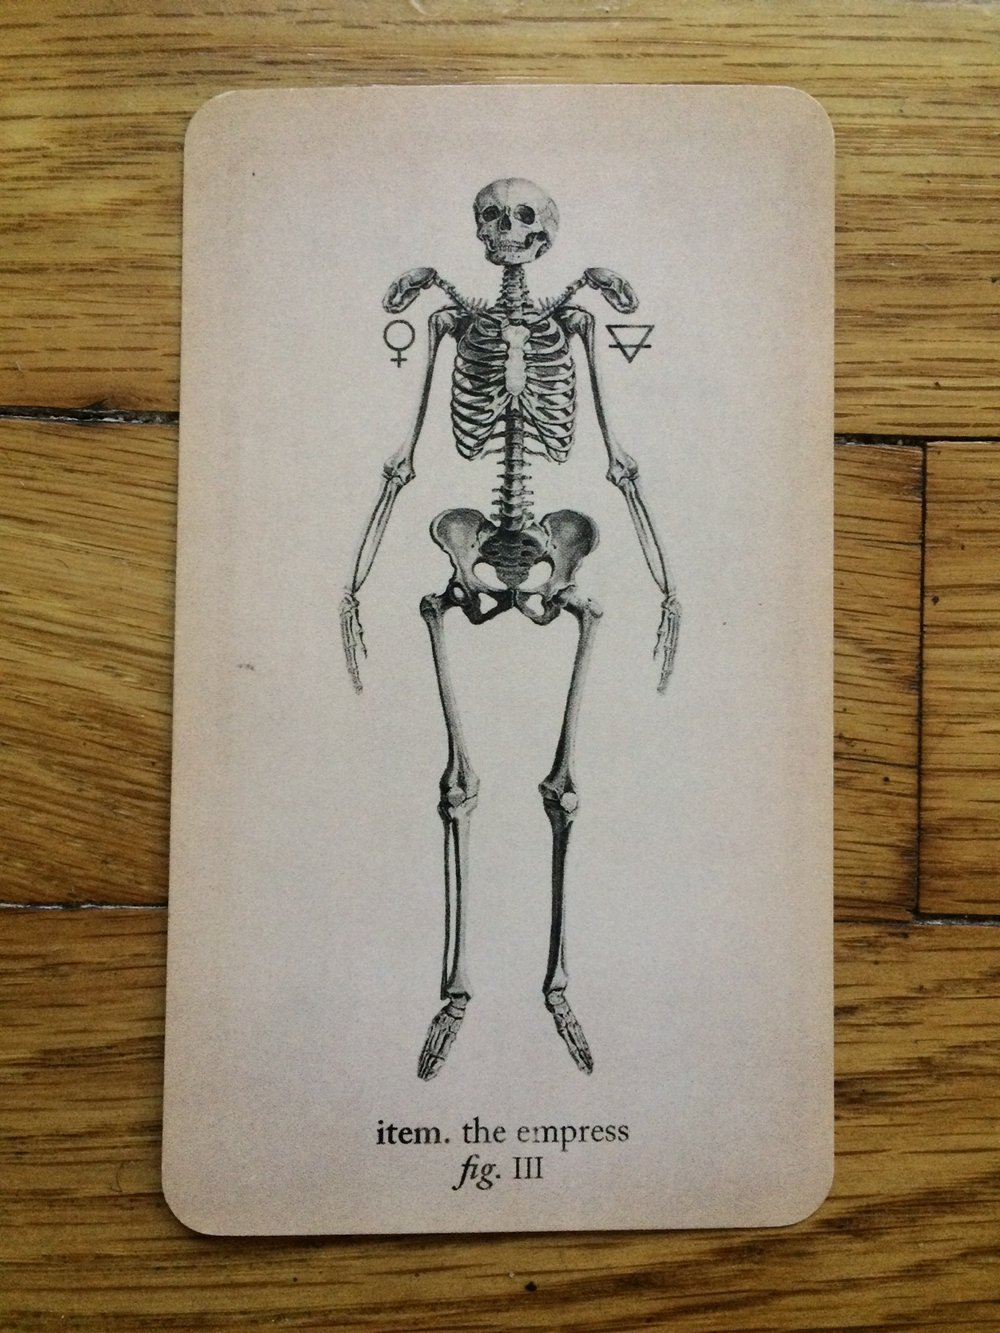 The Empress card in the Antique Anatomy Tarot